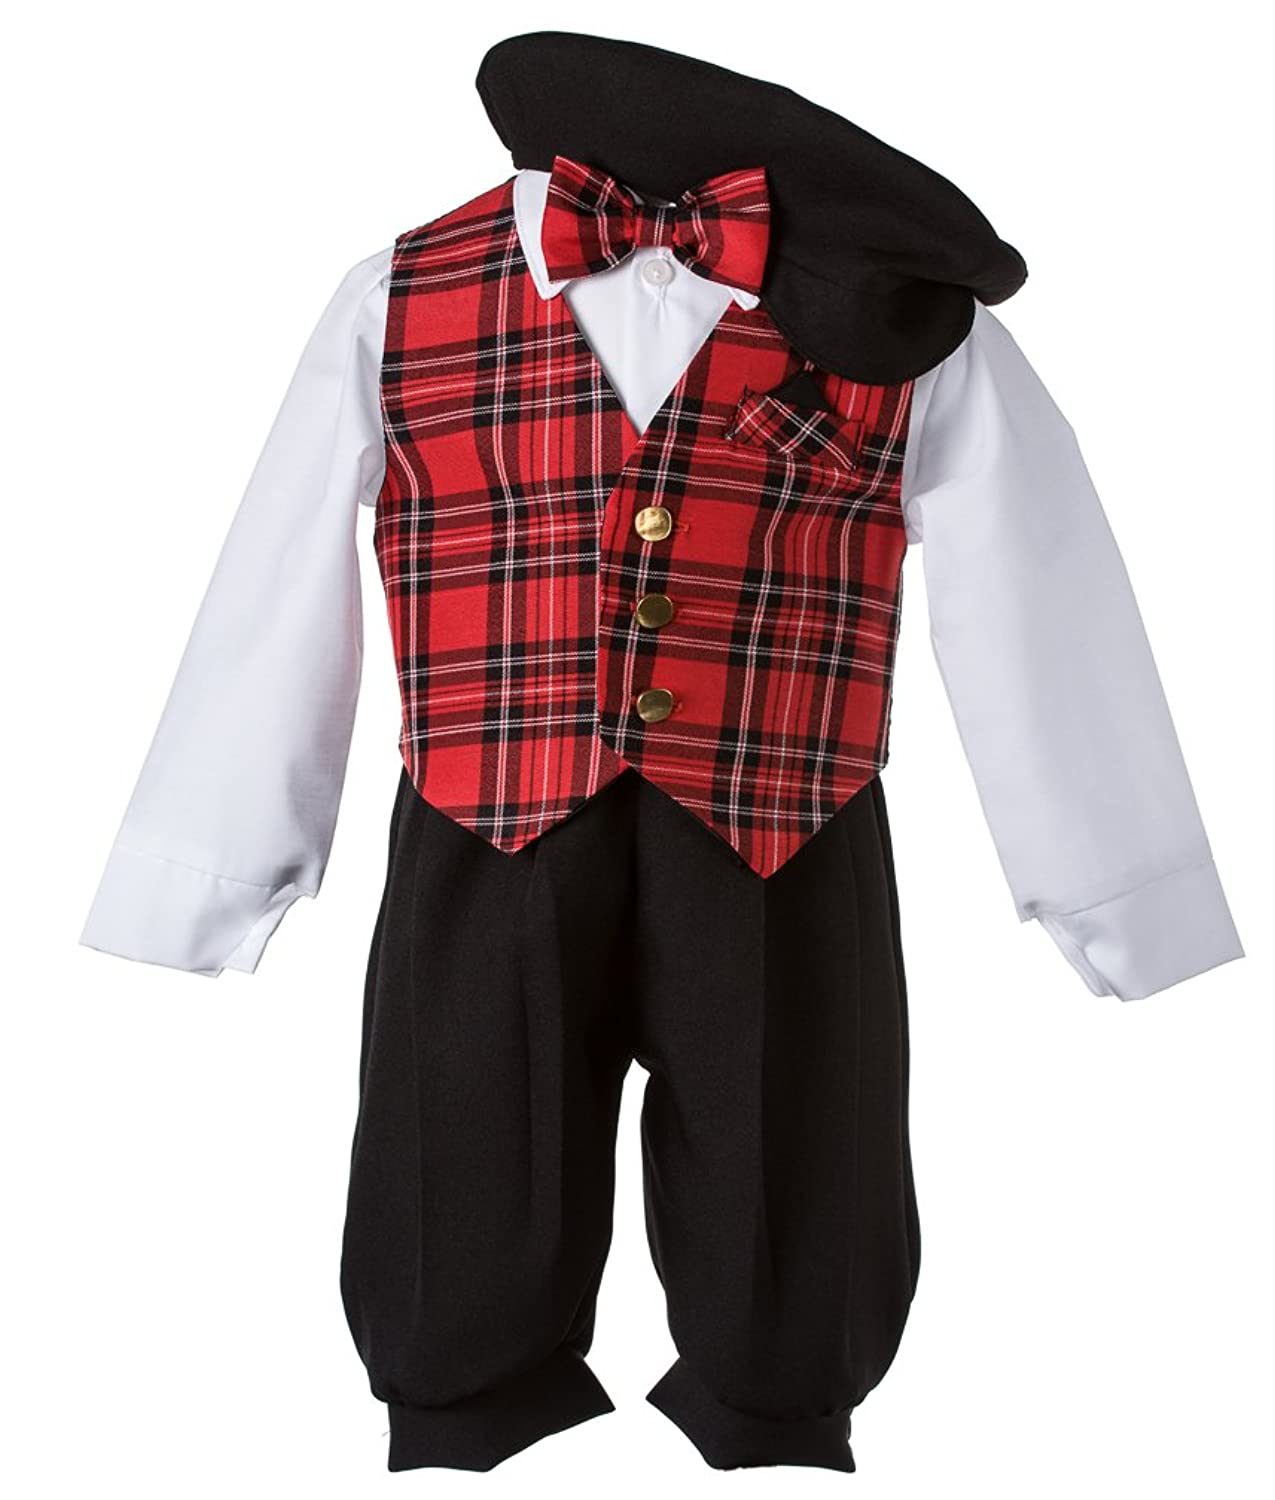 1930s Childrens Fashion: Girls, Boys, Toddler, Baby Costumes Tuxgear Baby Vintage Black Knickers Set with Holiday Red Plaid Bow Tie & Vest $23.89 AT vintagedancer.com